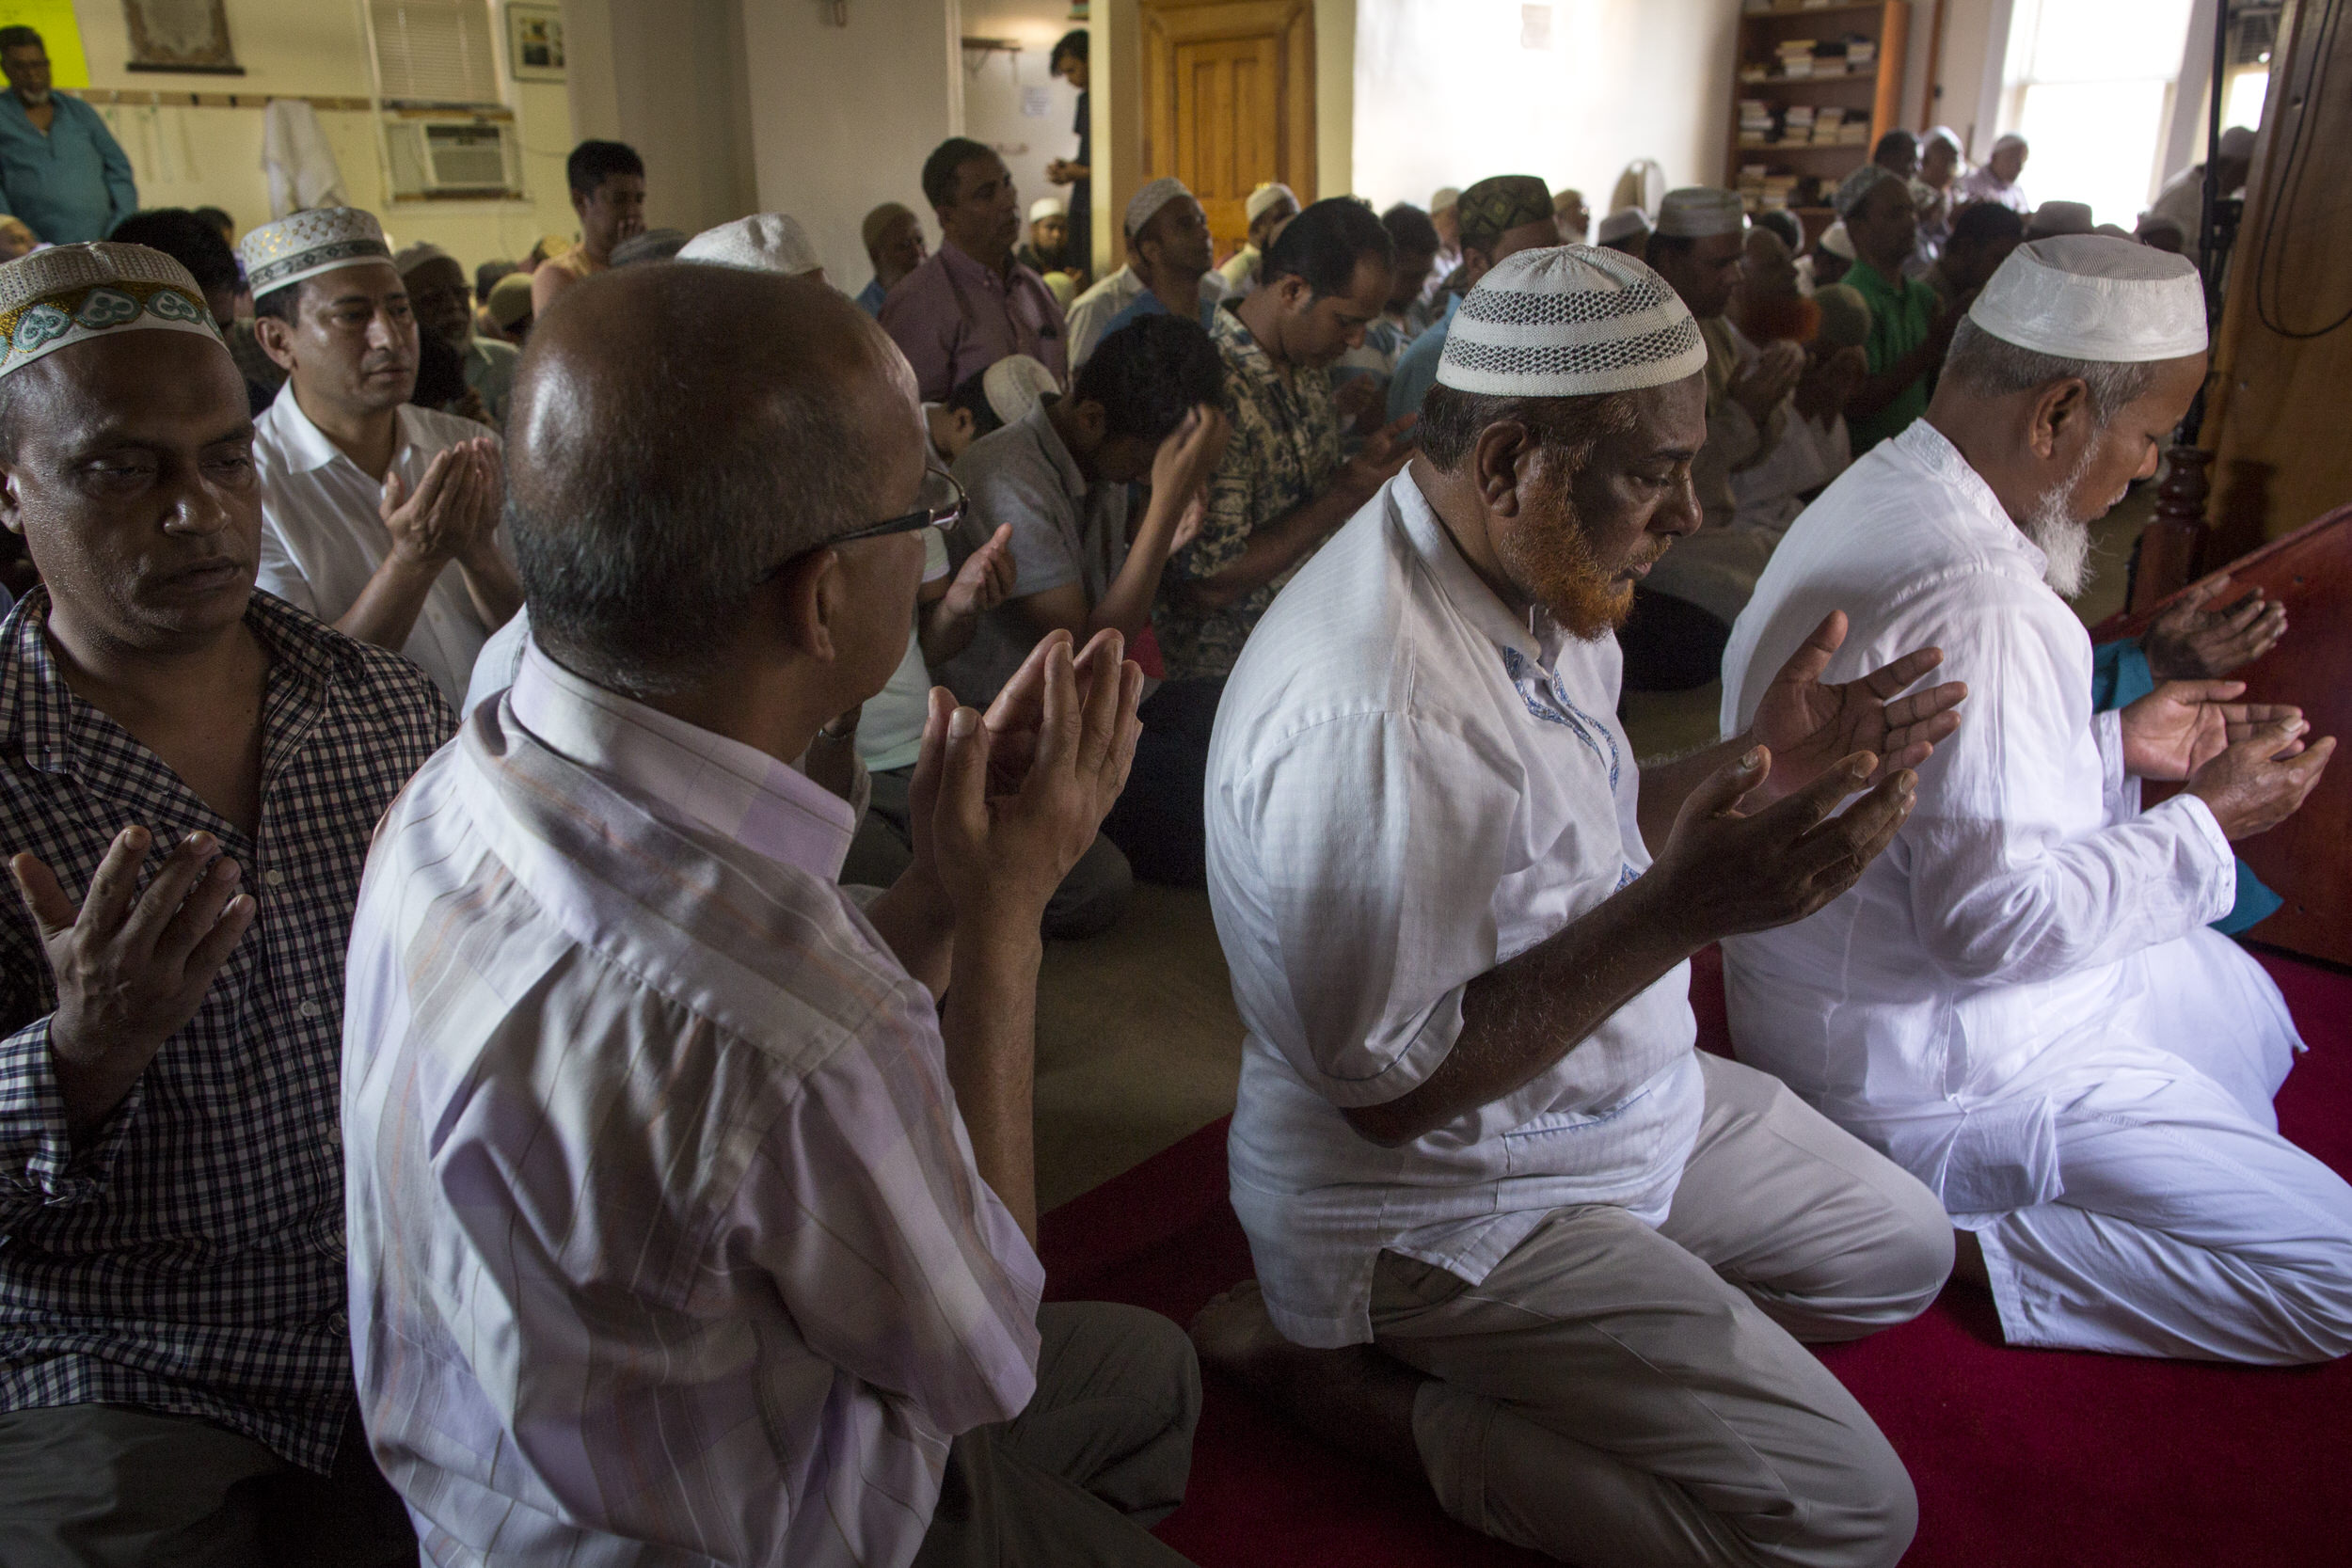 A prayer service at Al-Furqan Jame Masjid mosque in Ozone Park, Queens a few hours after the mosque's imam and his assistant were shot and killed on the street after leaving an earlier service.